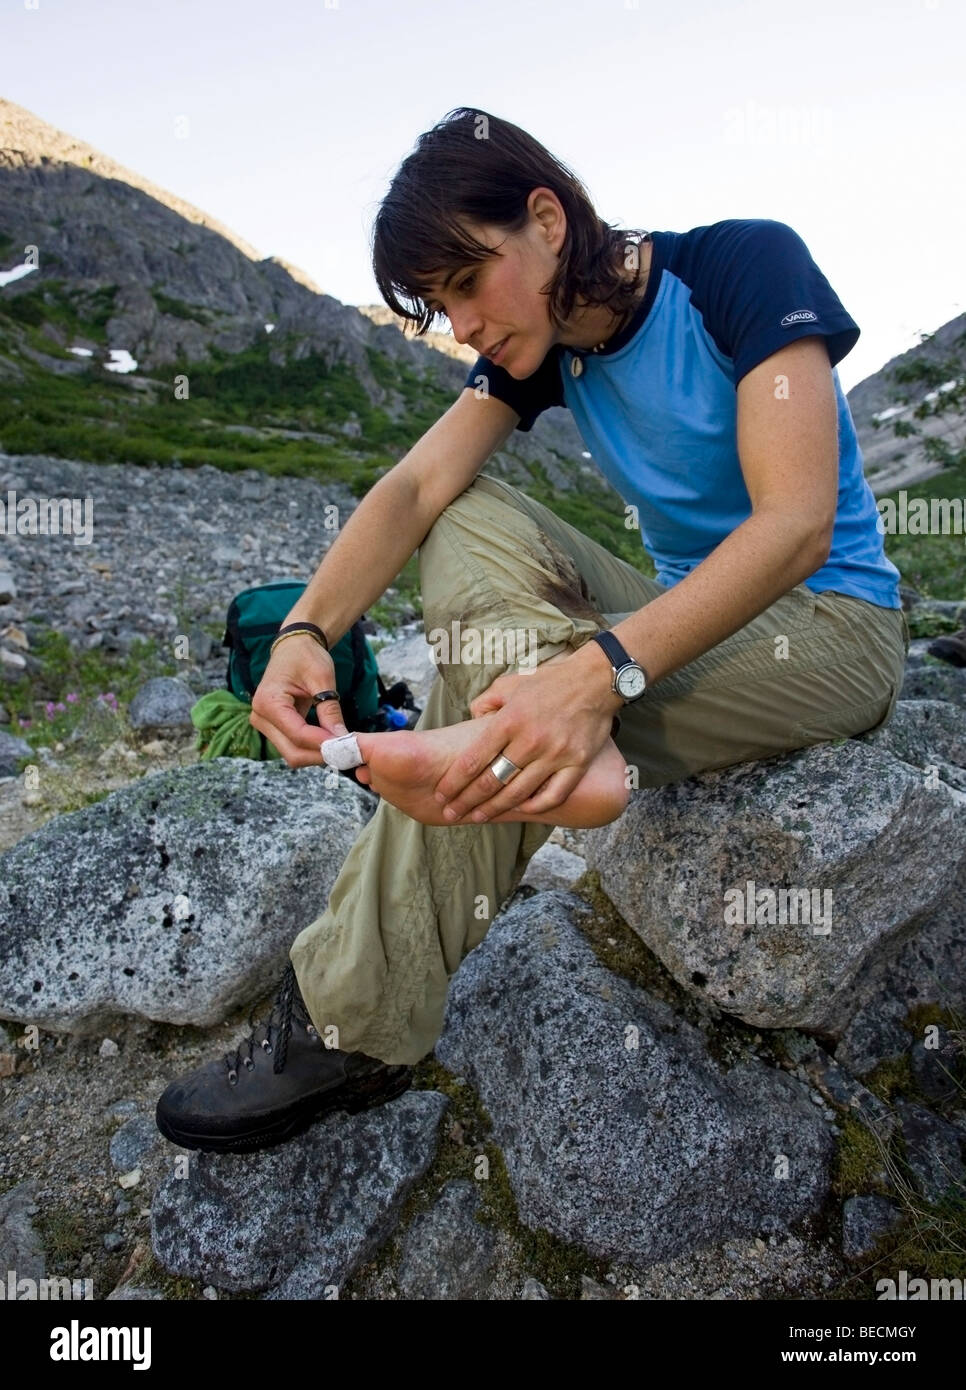 Young woman hiking, backpacking, taping blister on toe, hiker, Klondike Gold Rush National Historical Park, Chilkoot - Stock Image